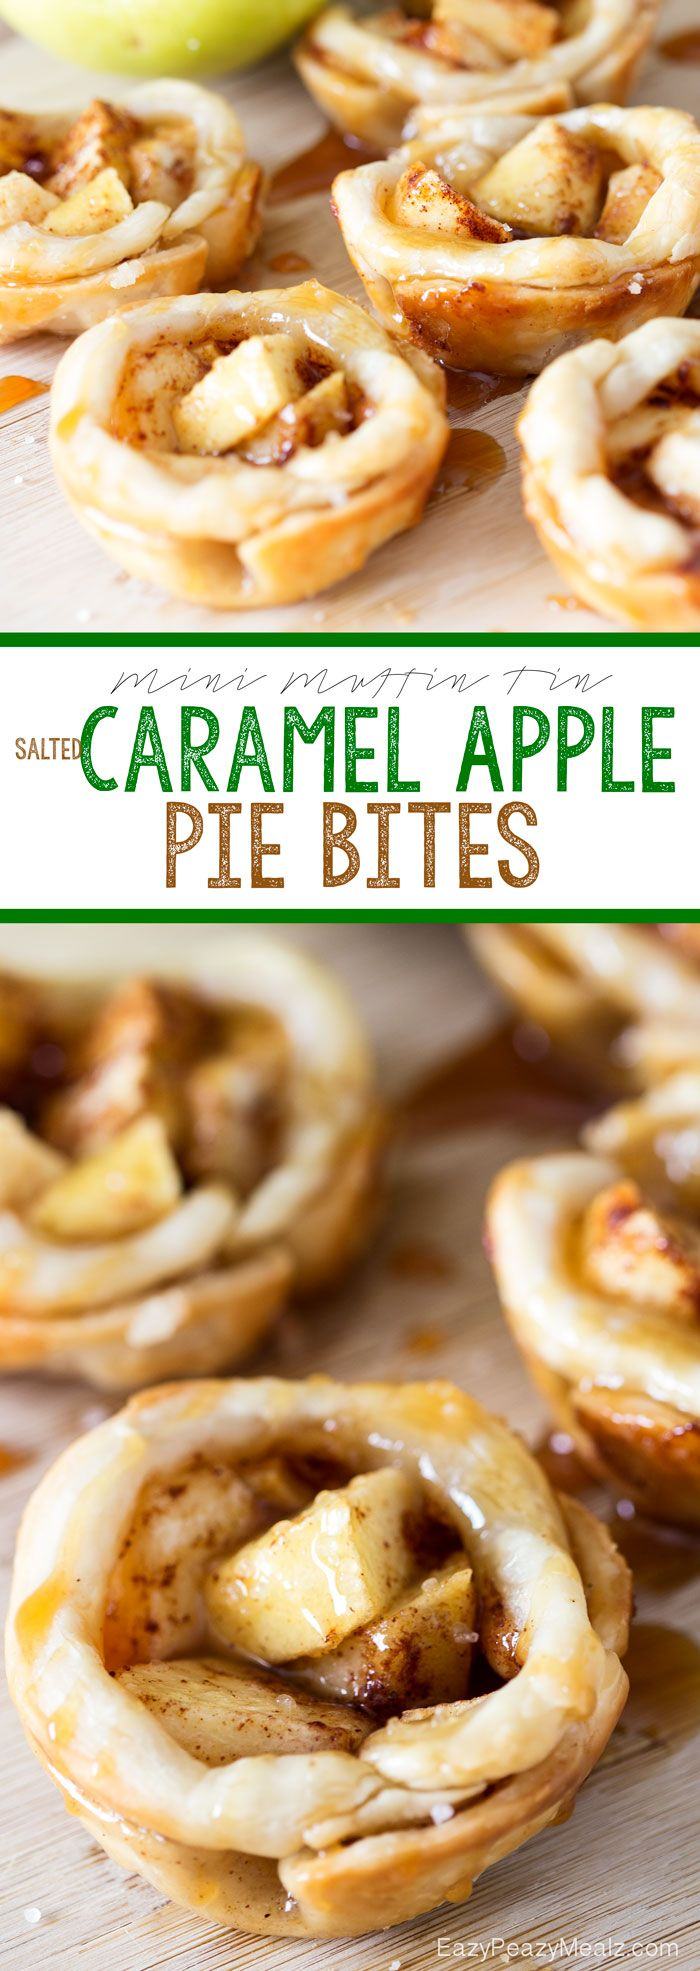 Mini Muffin Tin Salted Caramel Apple Bites that are super easy to make. Buttery, flakey, cinnamon, salted caramel, deliciousness!